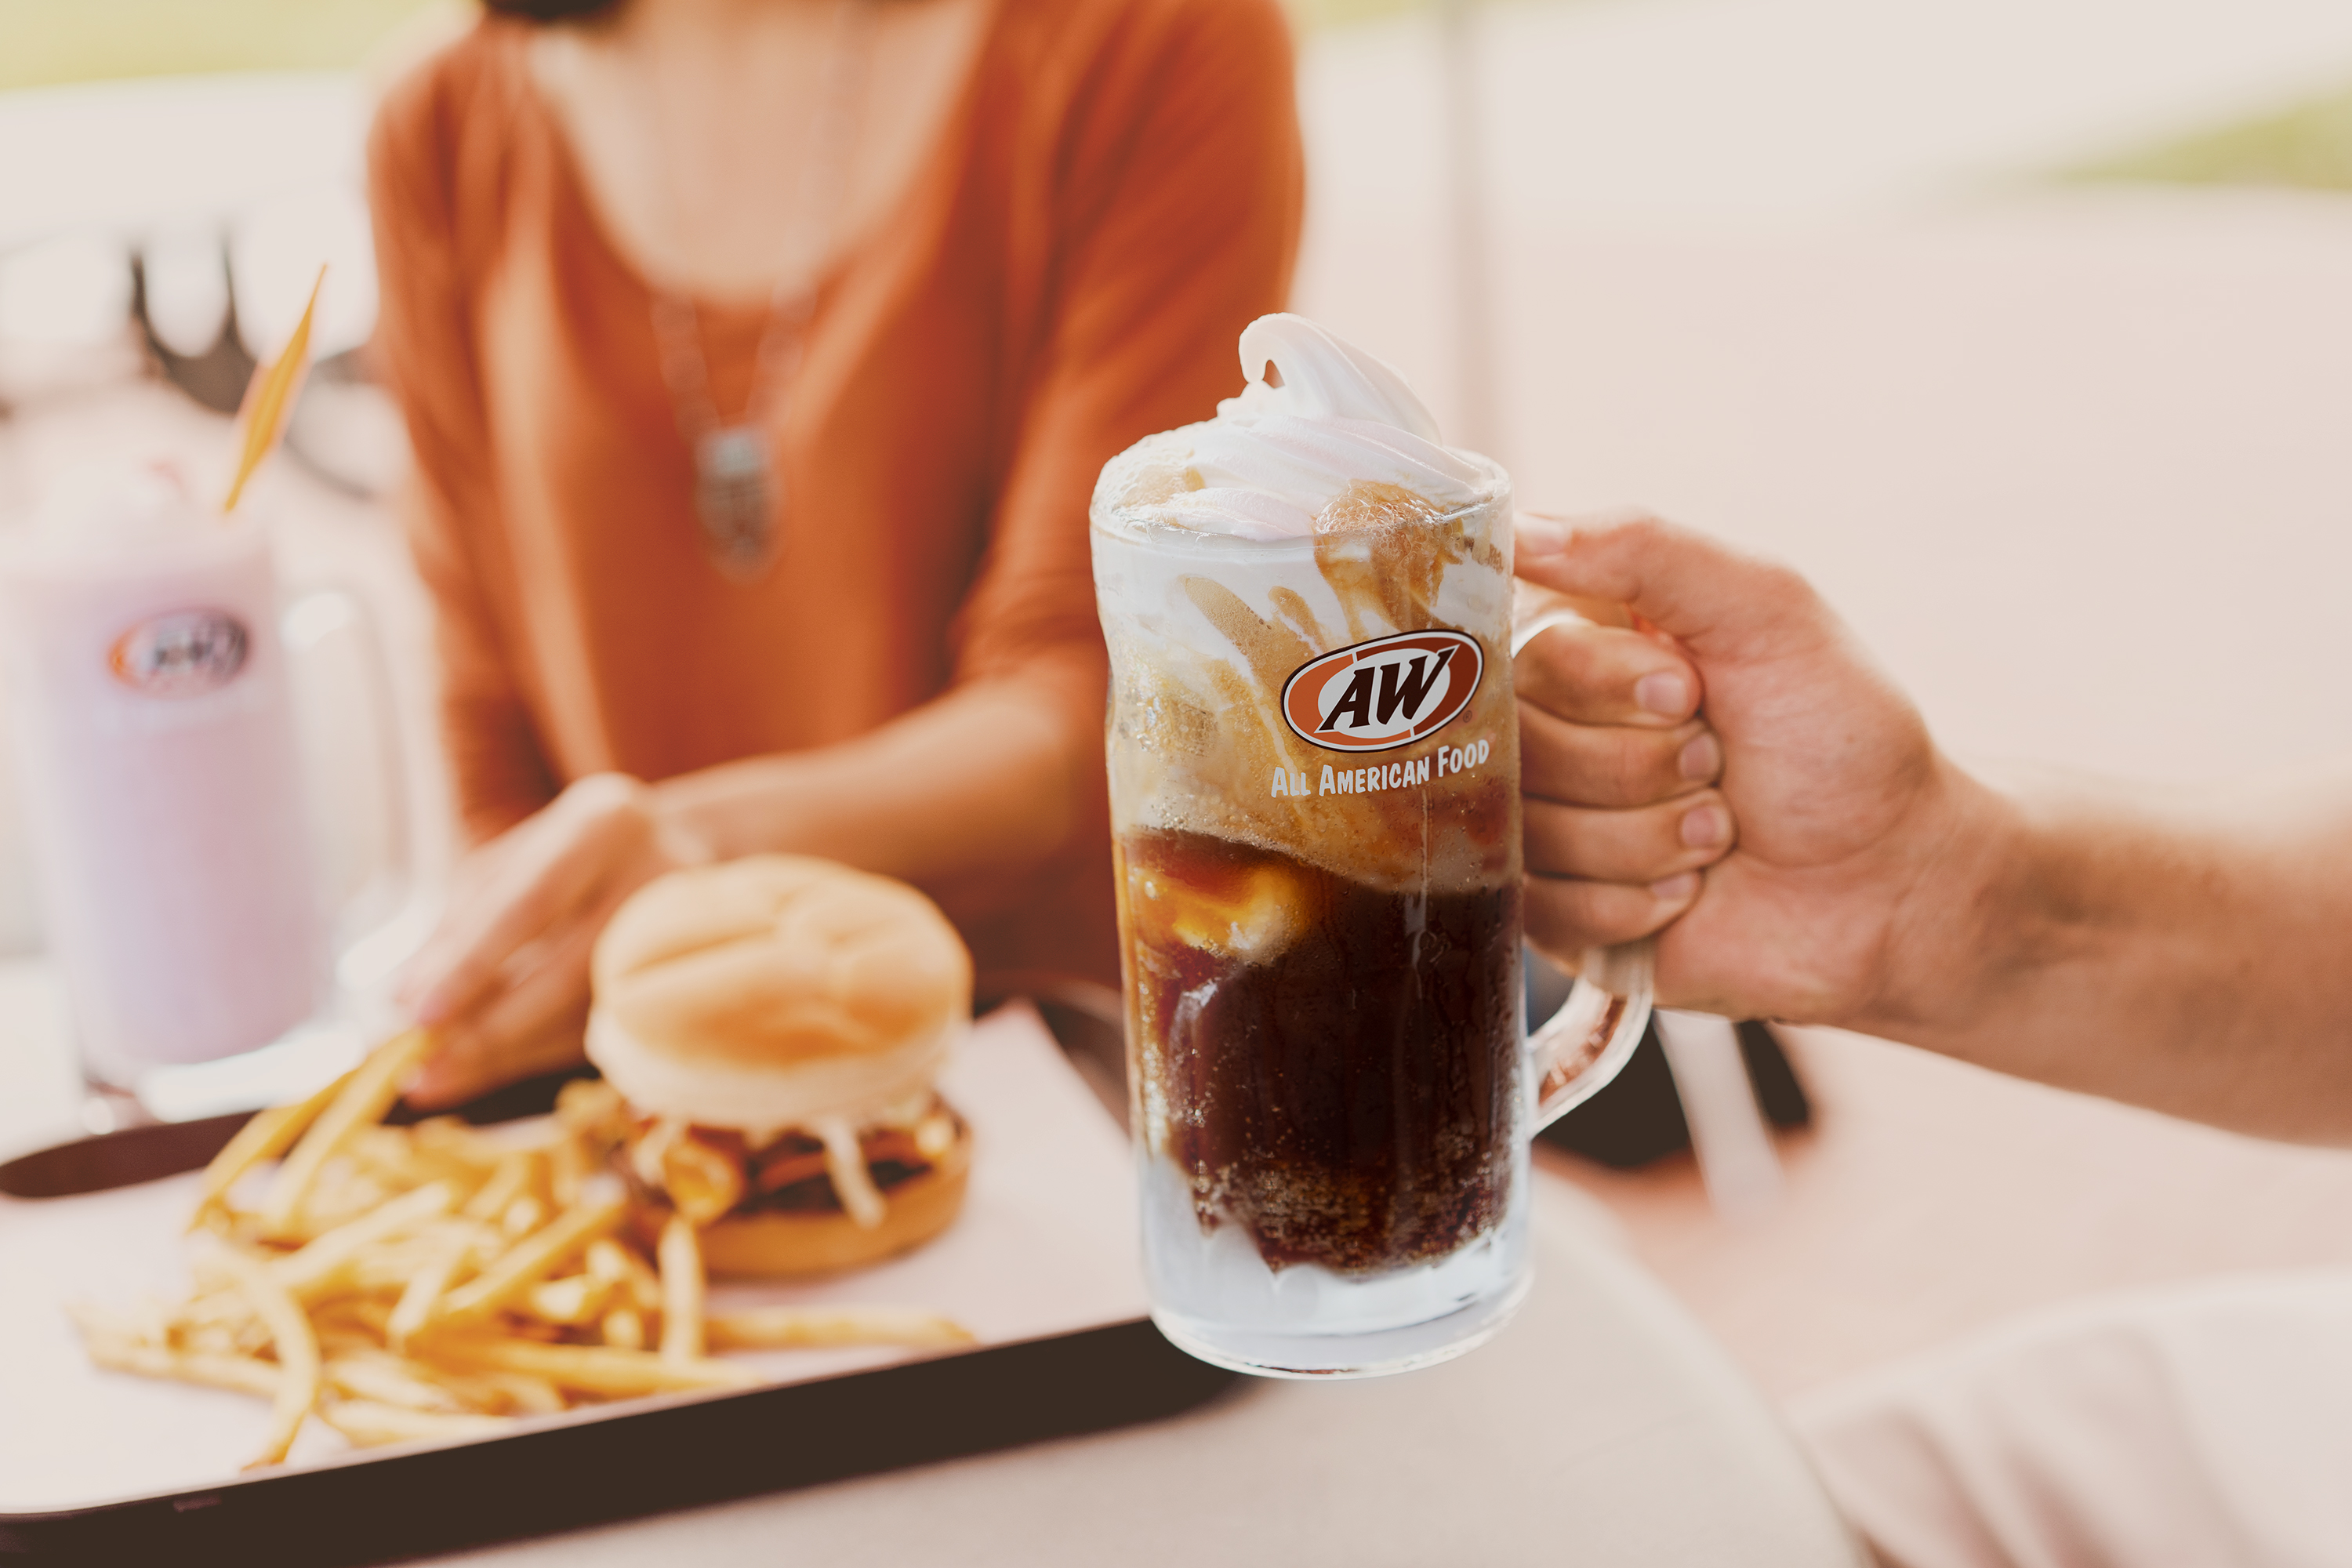 Holding Root Beer Float with A&W logo minus ampersand